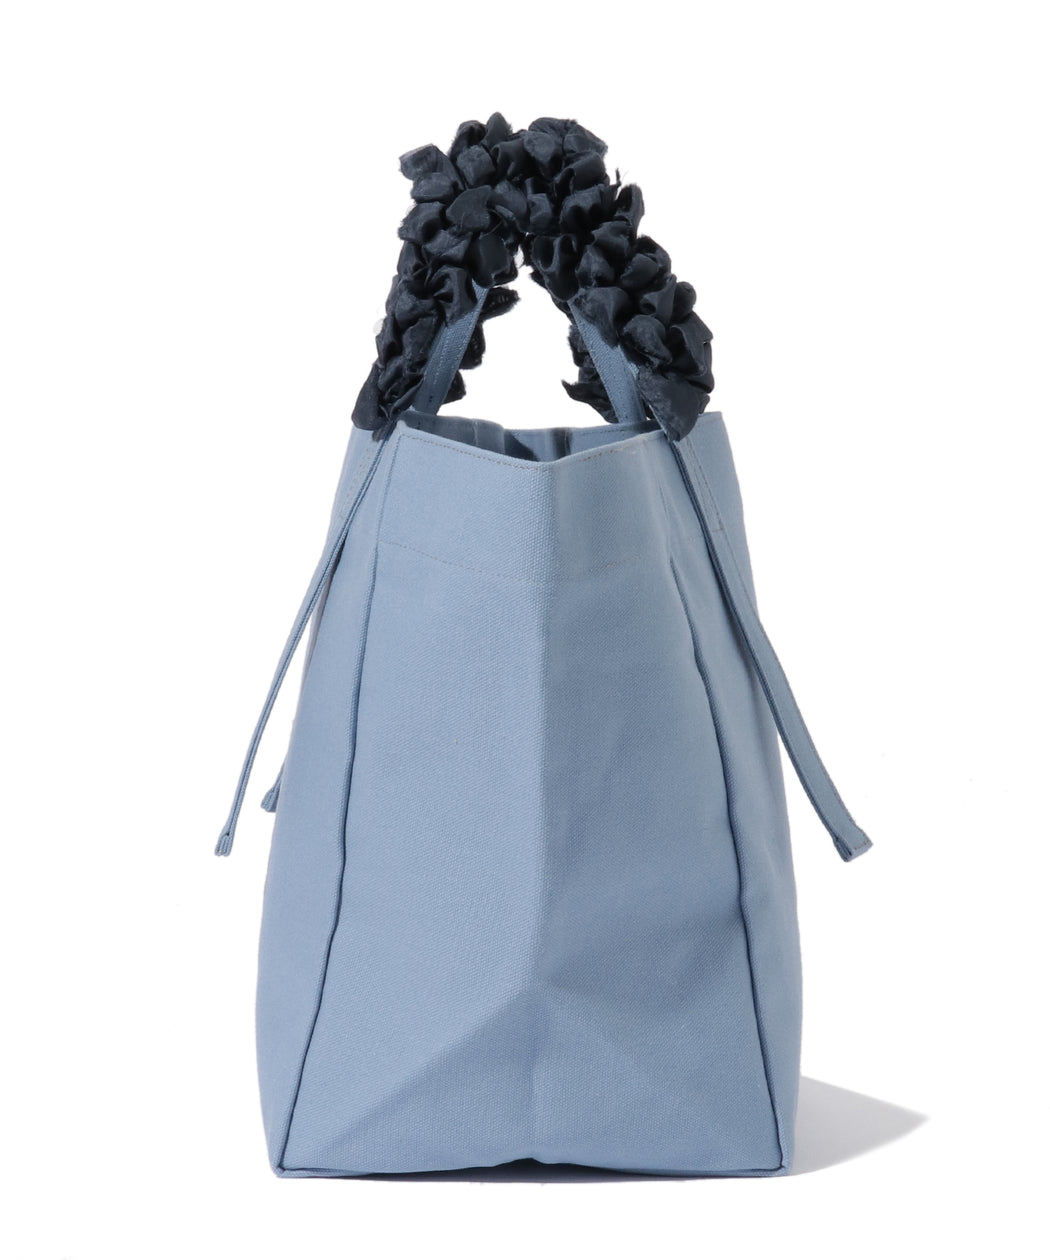 Grape handle tote (plain)